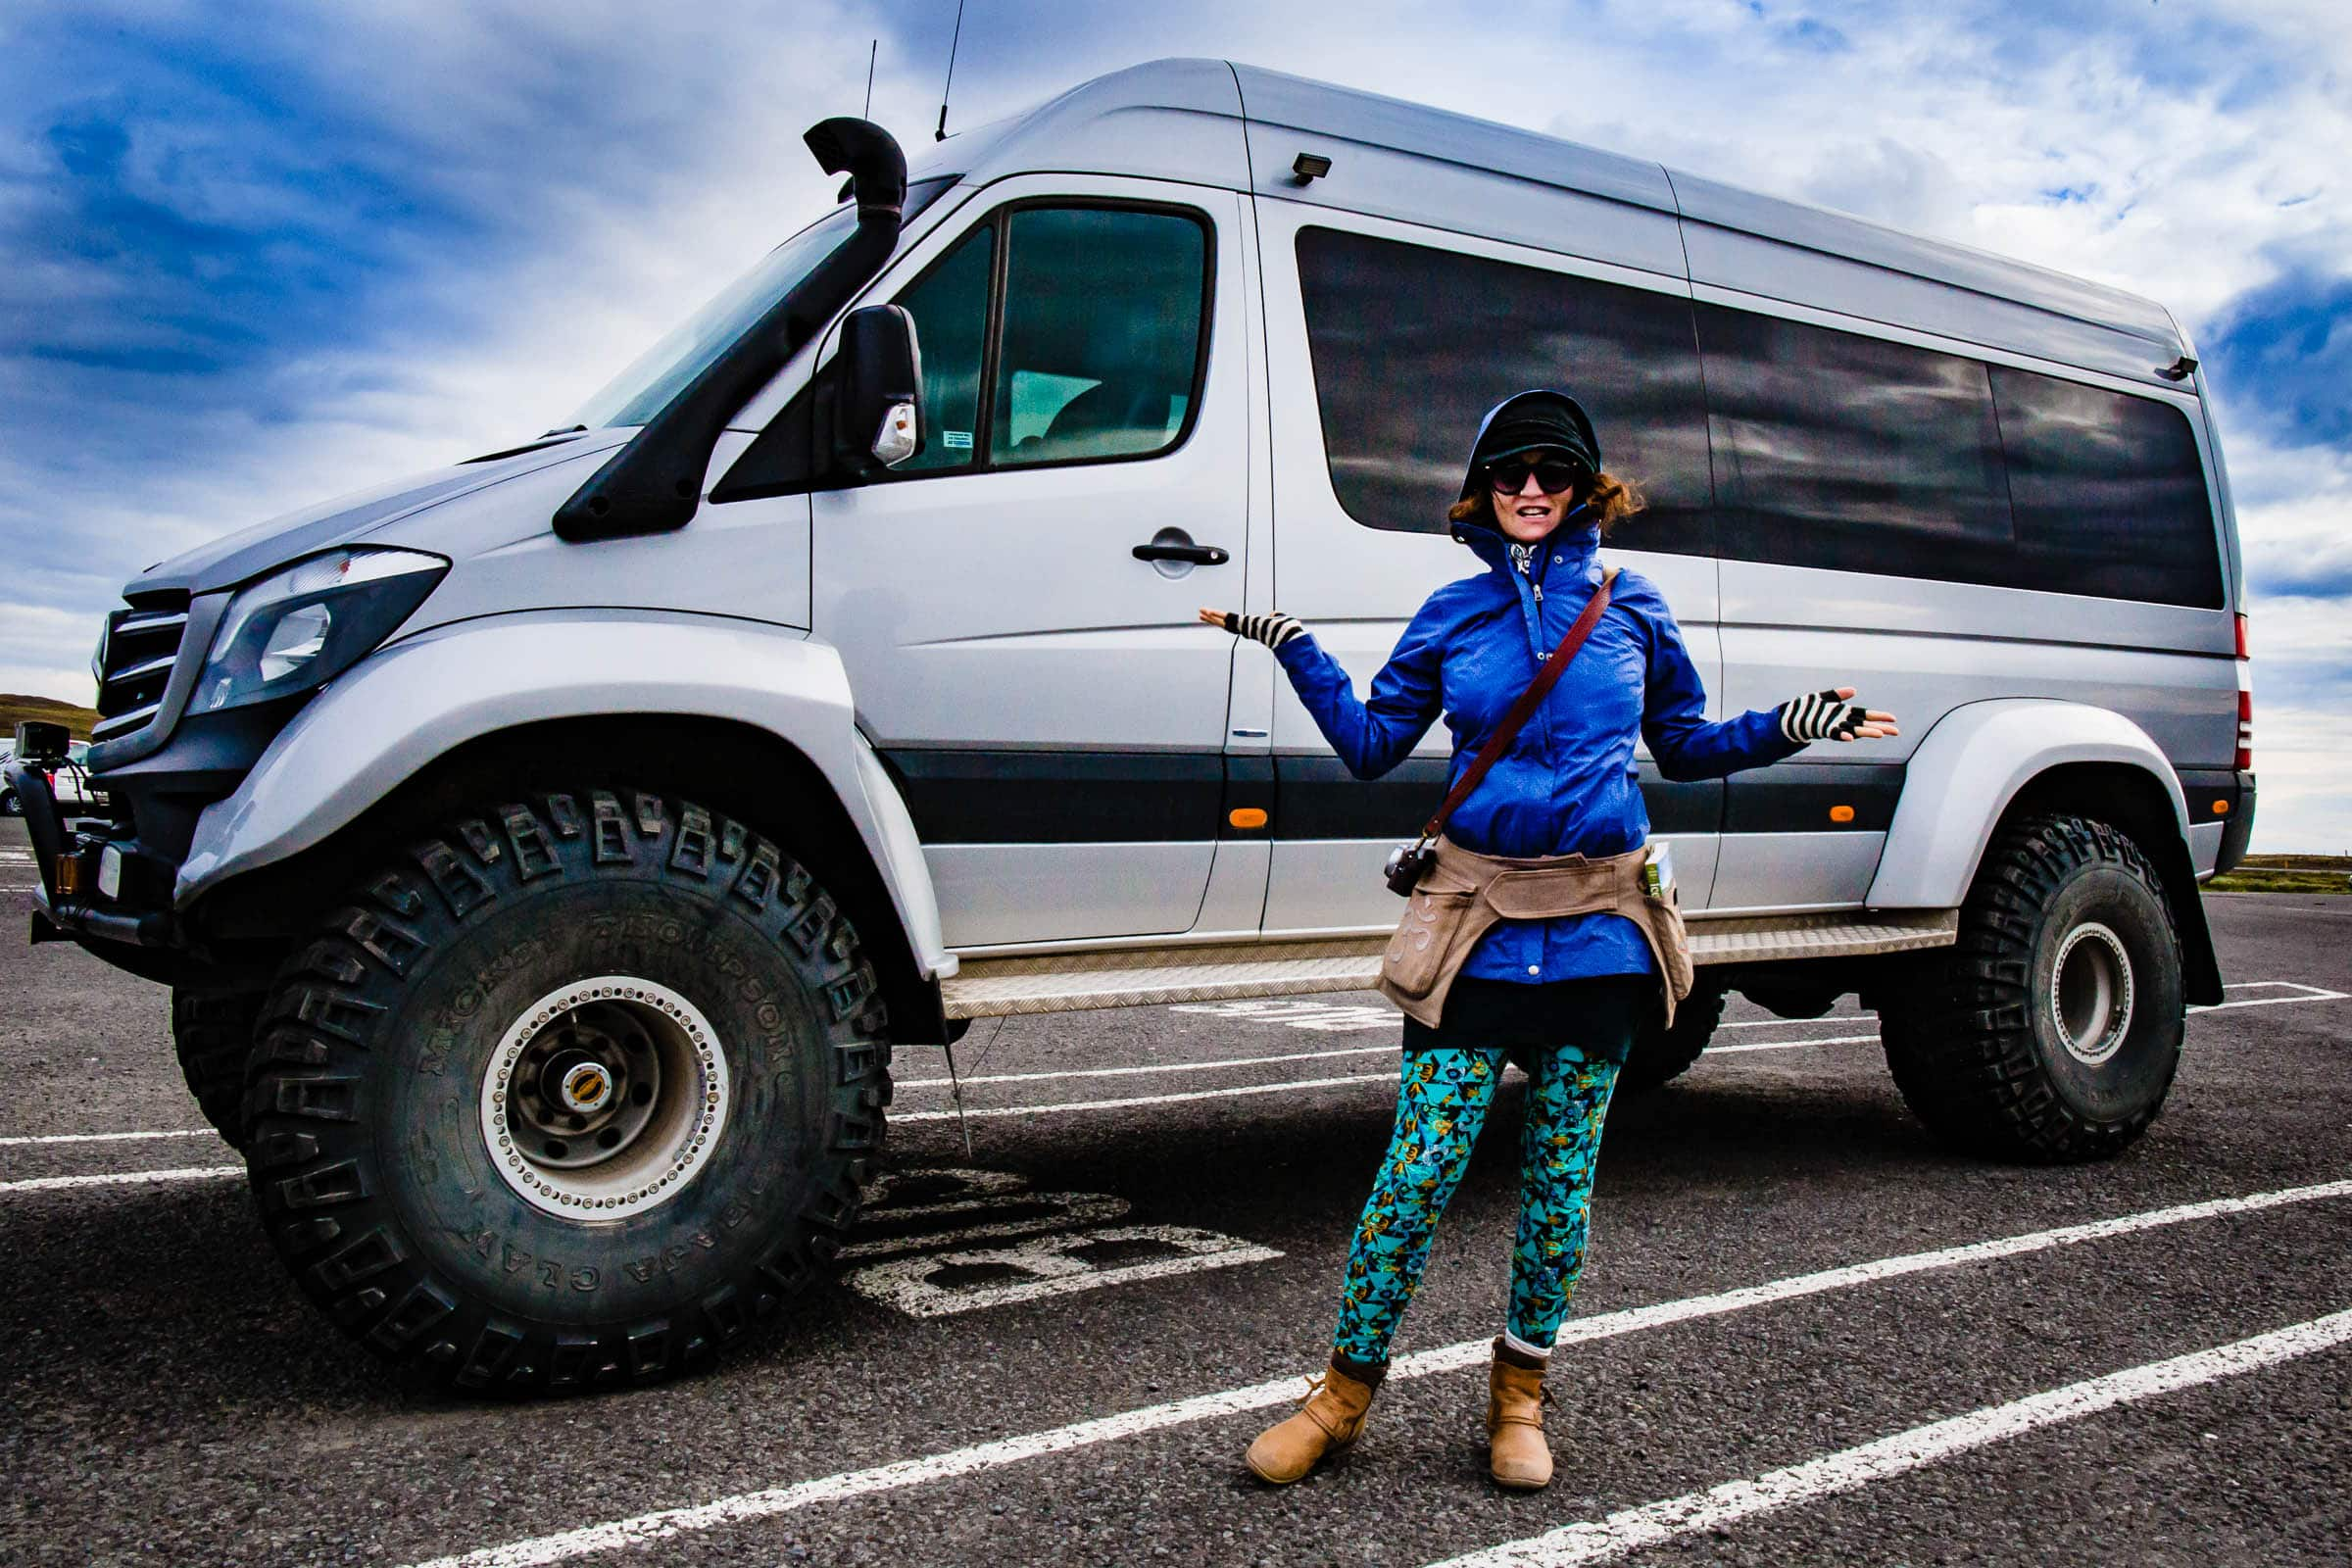 A huge off road van helpful for exploring and illustrating Jos and Tree's Iceland engagement photo ideas